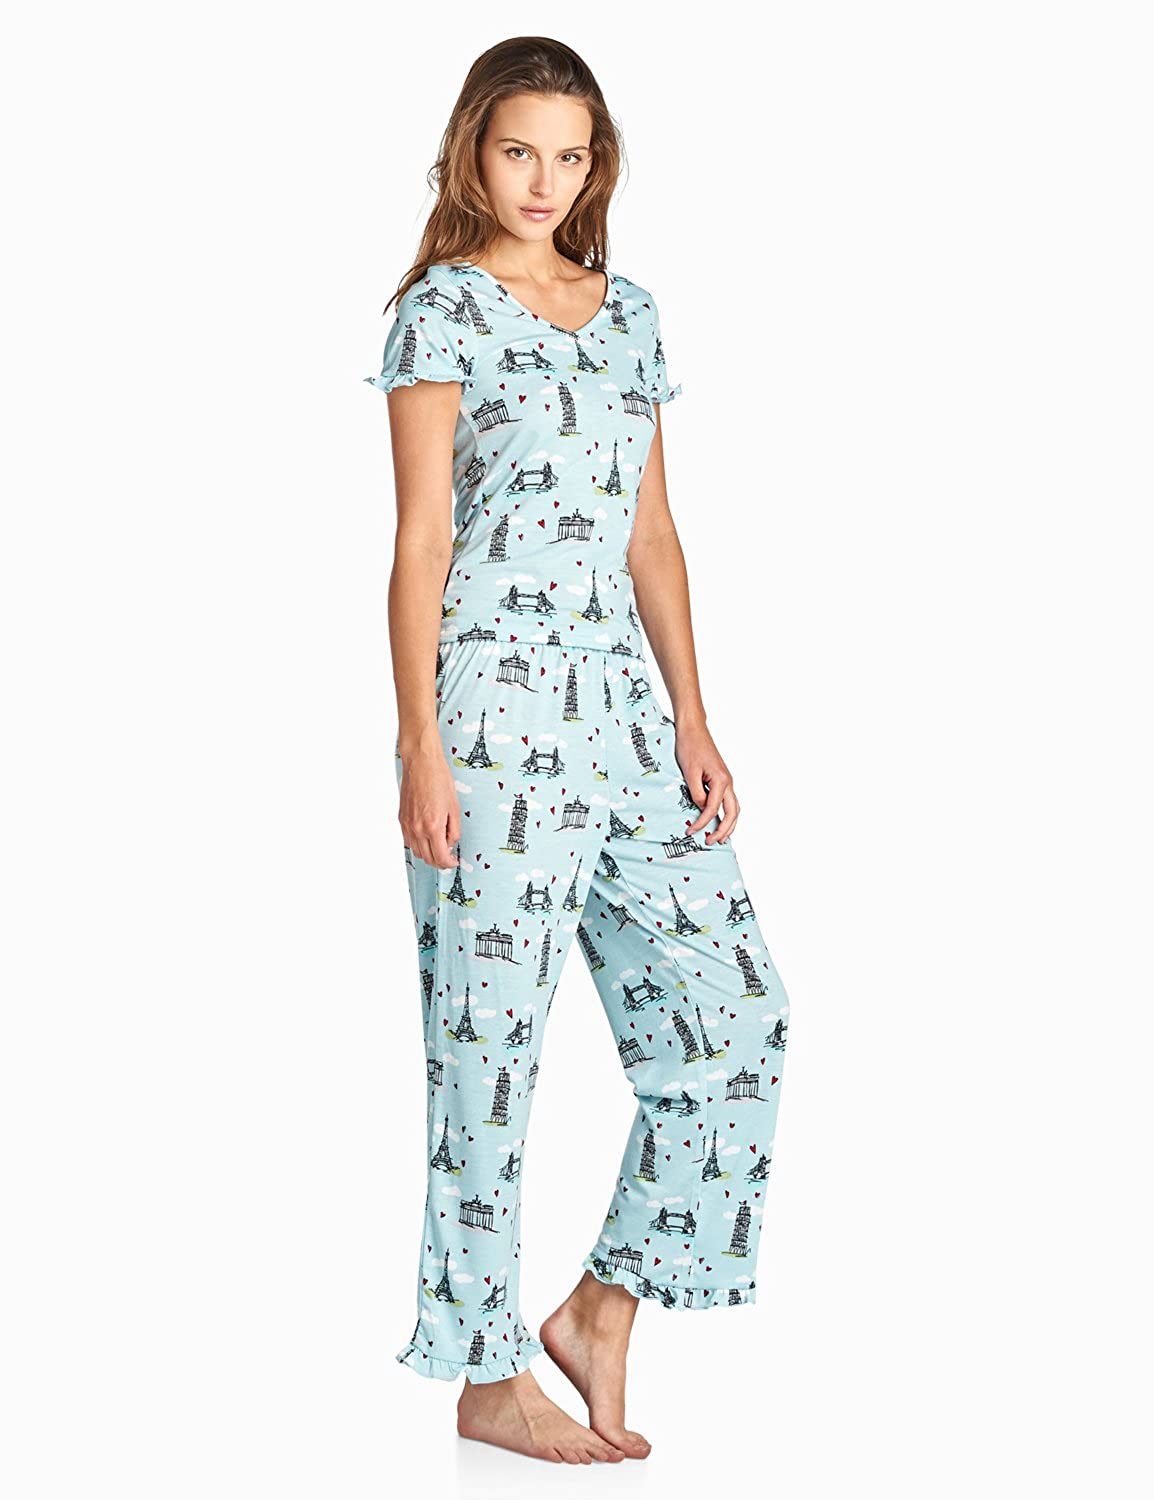 BedHead Pajamas BHPJ Women s Fitted Soft Knit Ruffle Short Sleeve Capri  Pajama Set BHPJ 11024- larger image c6a00ee5f